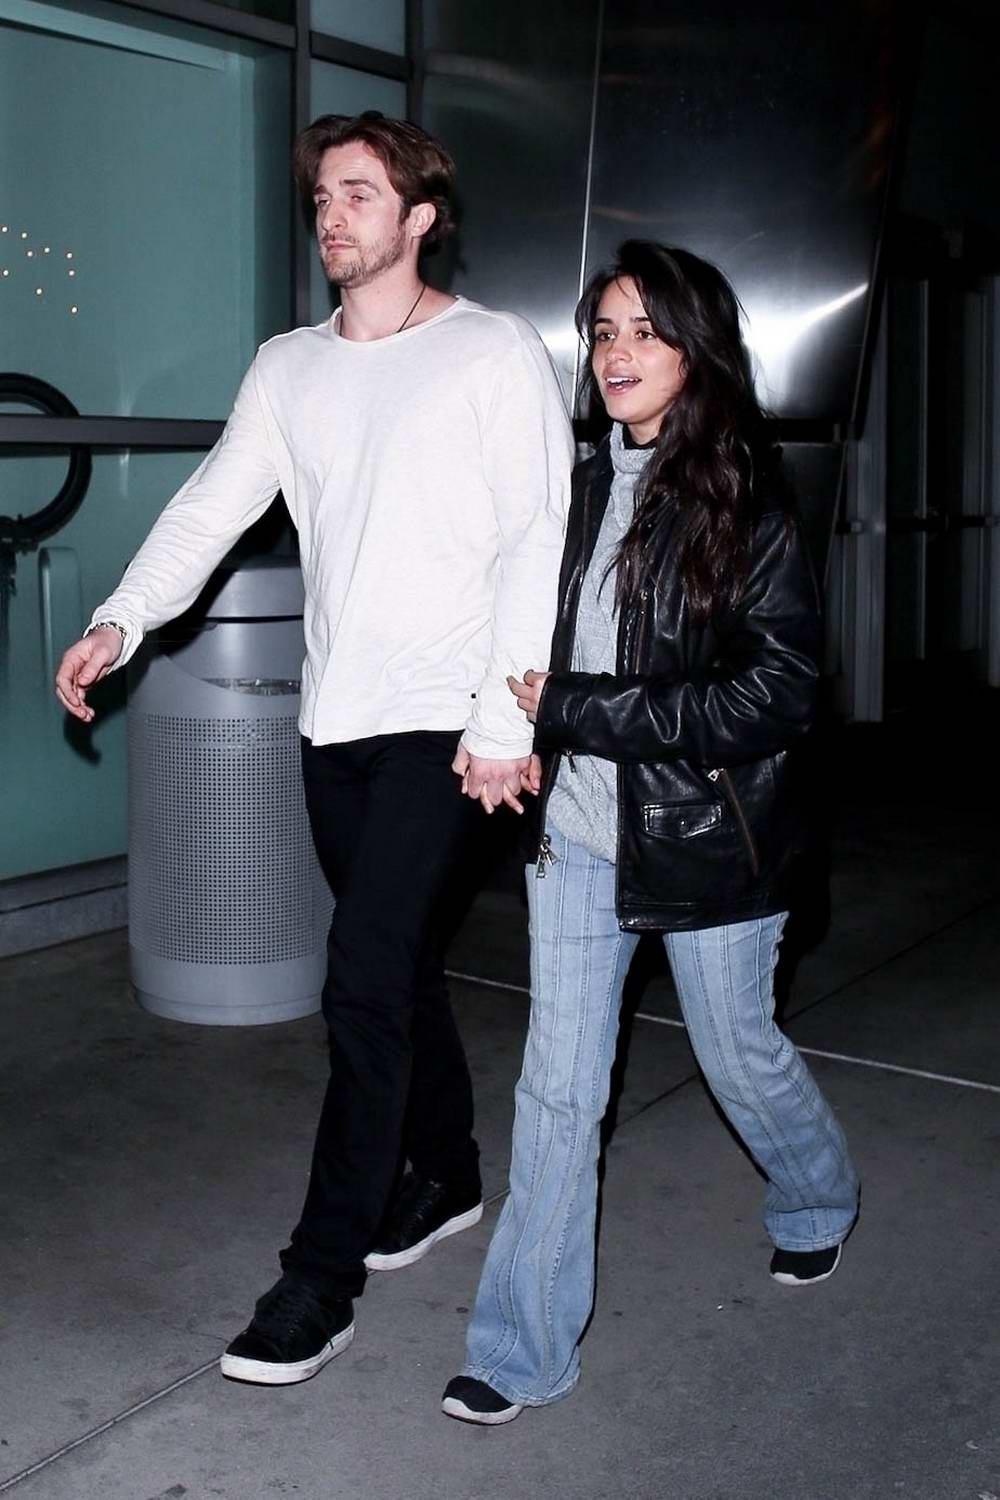 Camila Cabello and Matthew Hussey hold hands as they leave after a movie date at ArcLight Theatre in Hollywood, California